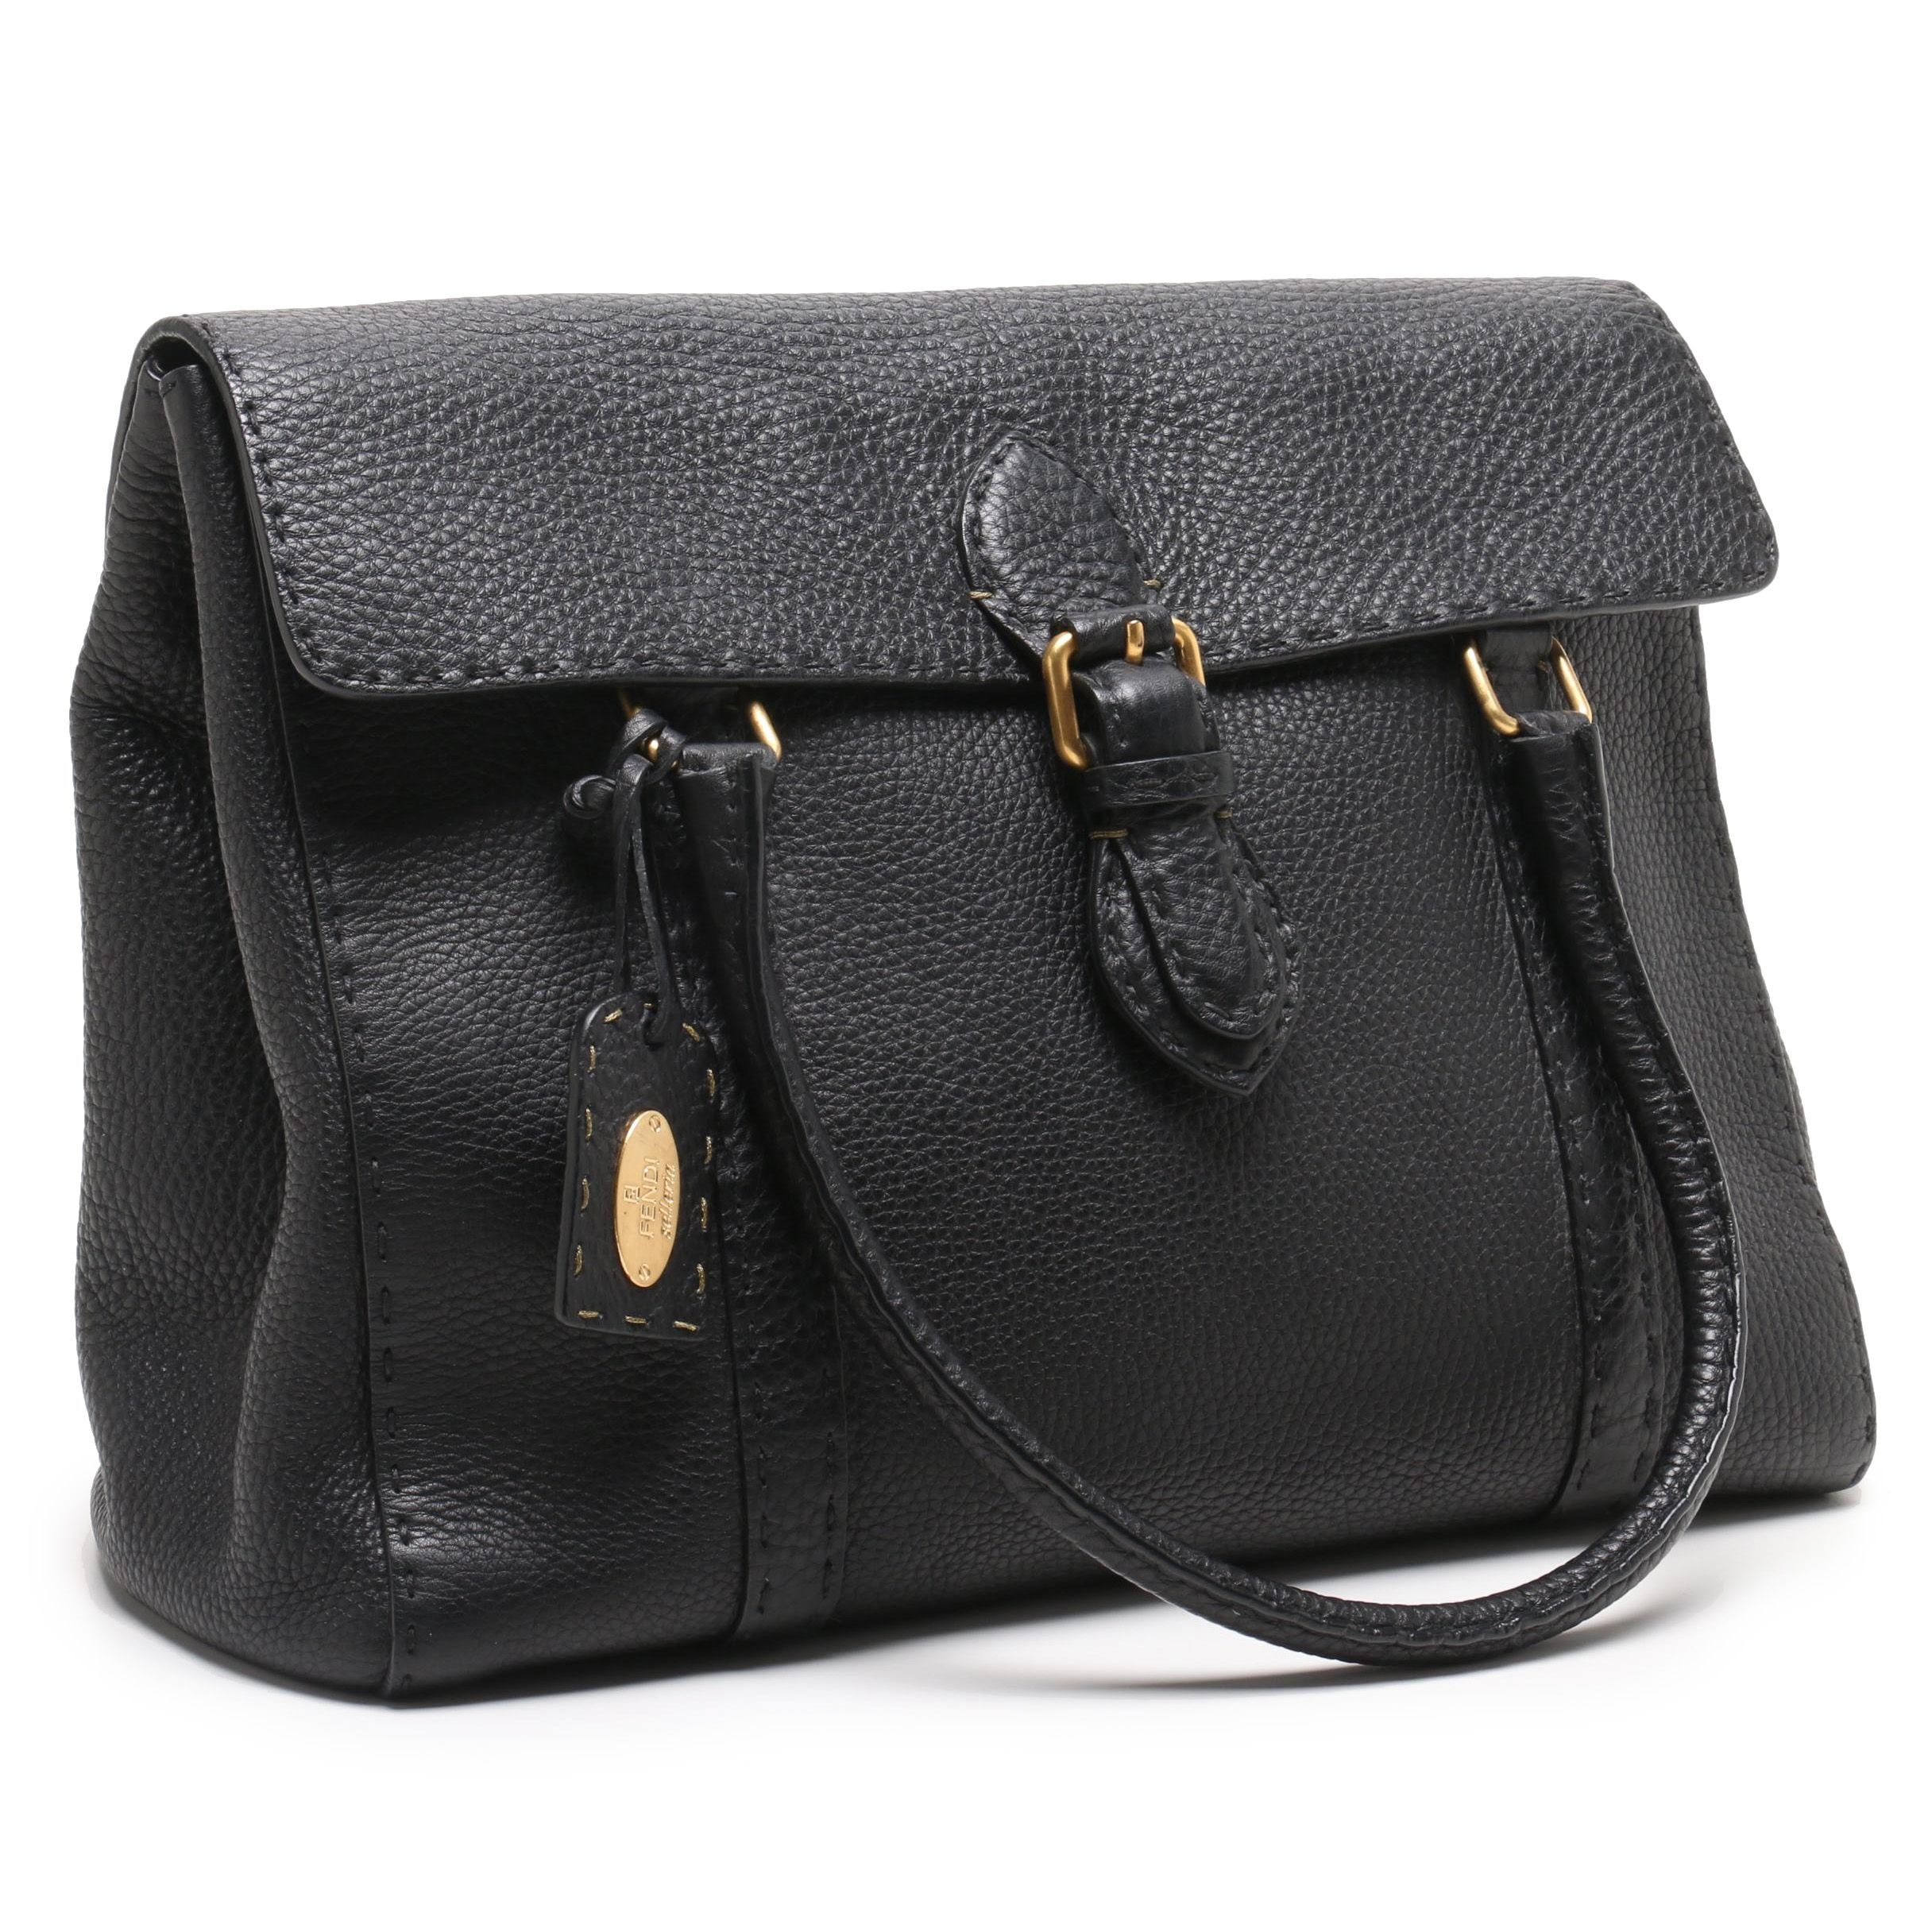 Fendi Selleria Black Pebbled Leather Linda Flap Satchel Bag